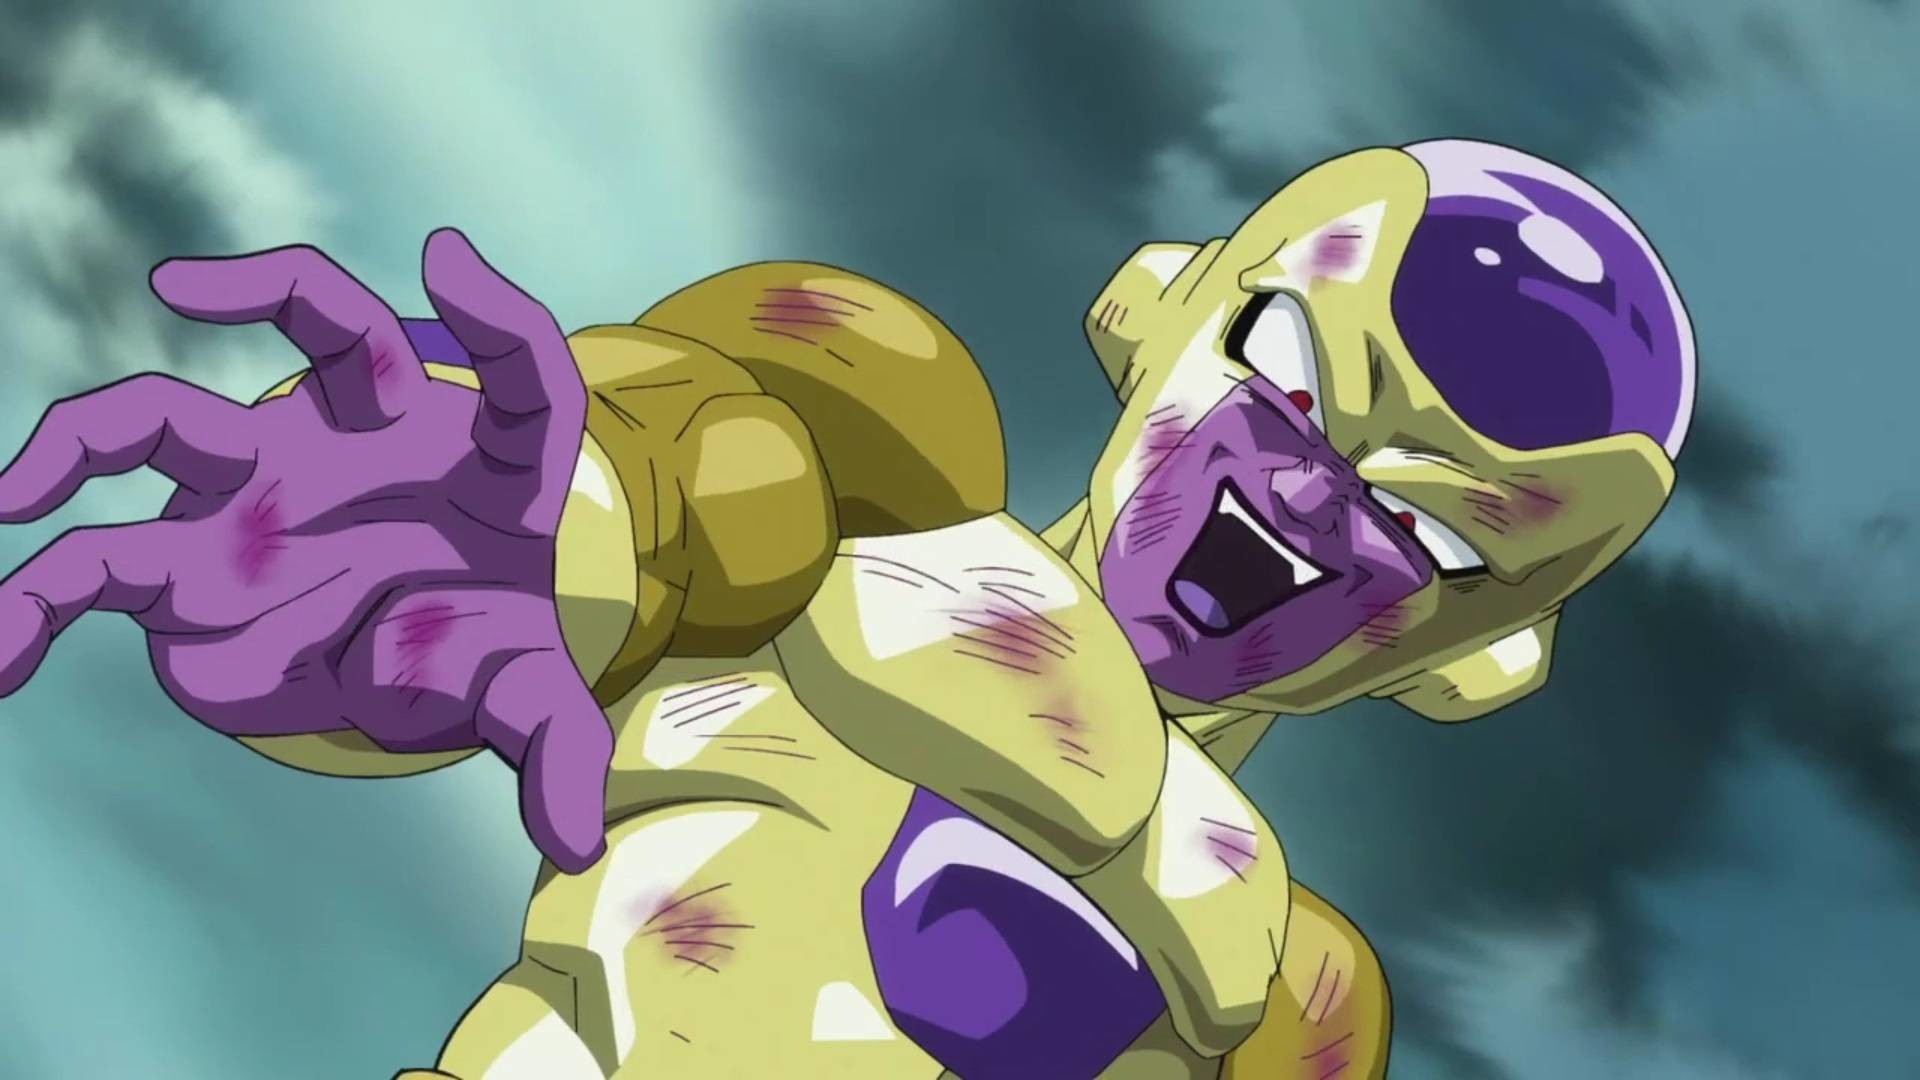 Dragon Ball Z Revival Of F' Release Date Is April 18: 5 Things To